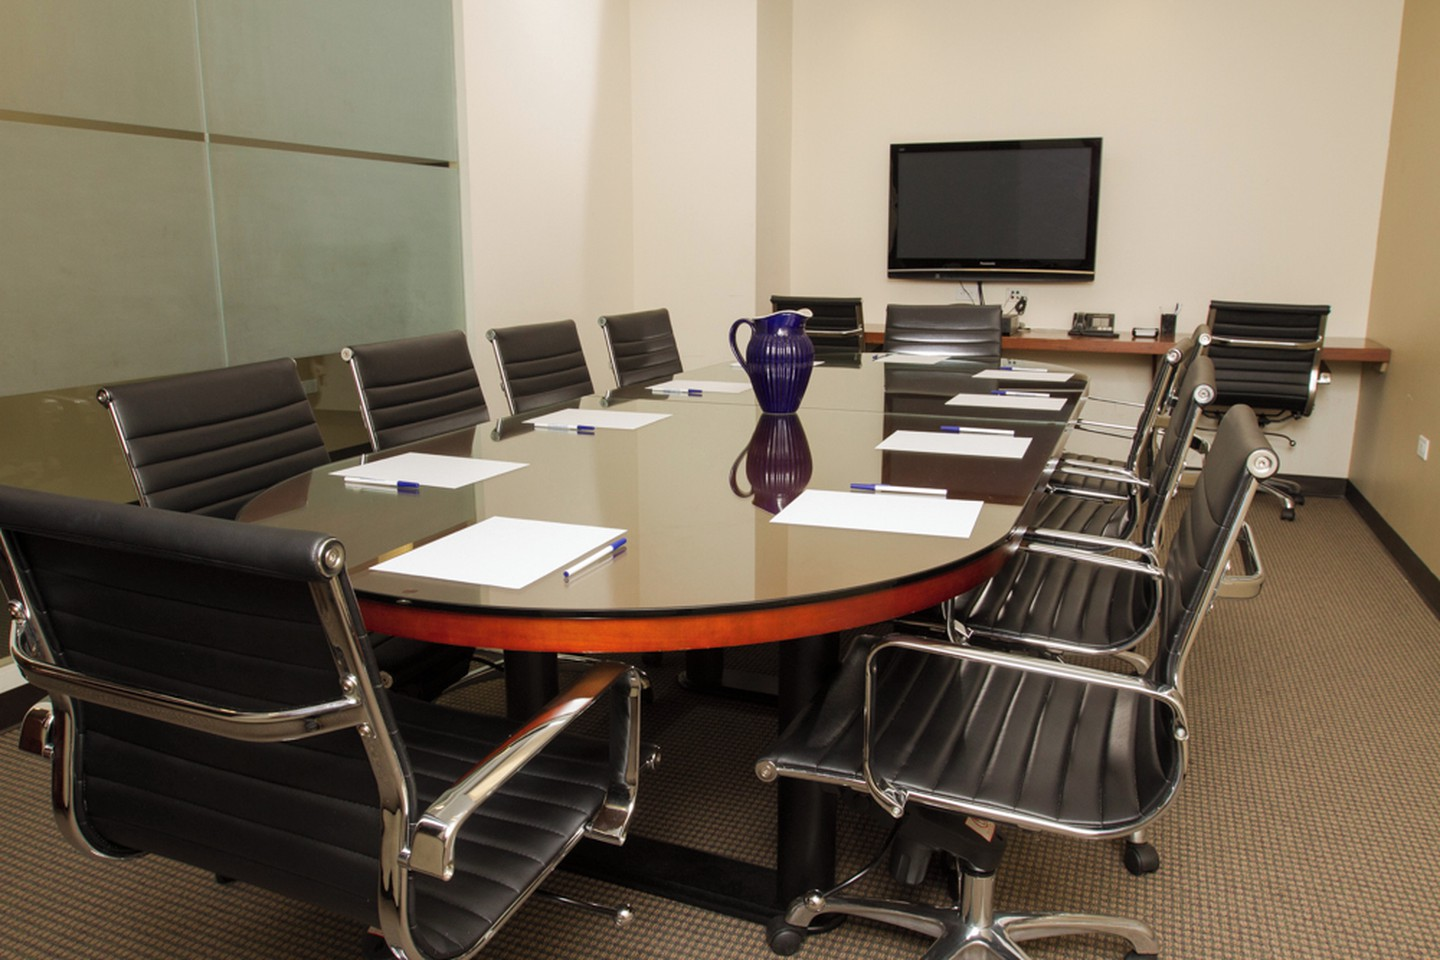 NYC training rooms Meetingraum Corporate Suites -10 Person Meeting Room Madison Ave image 1